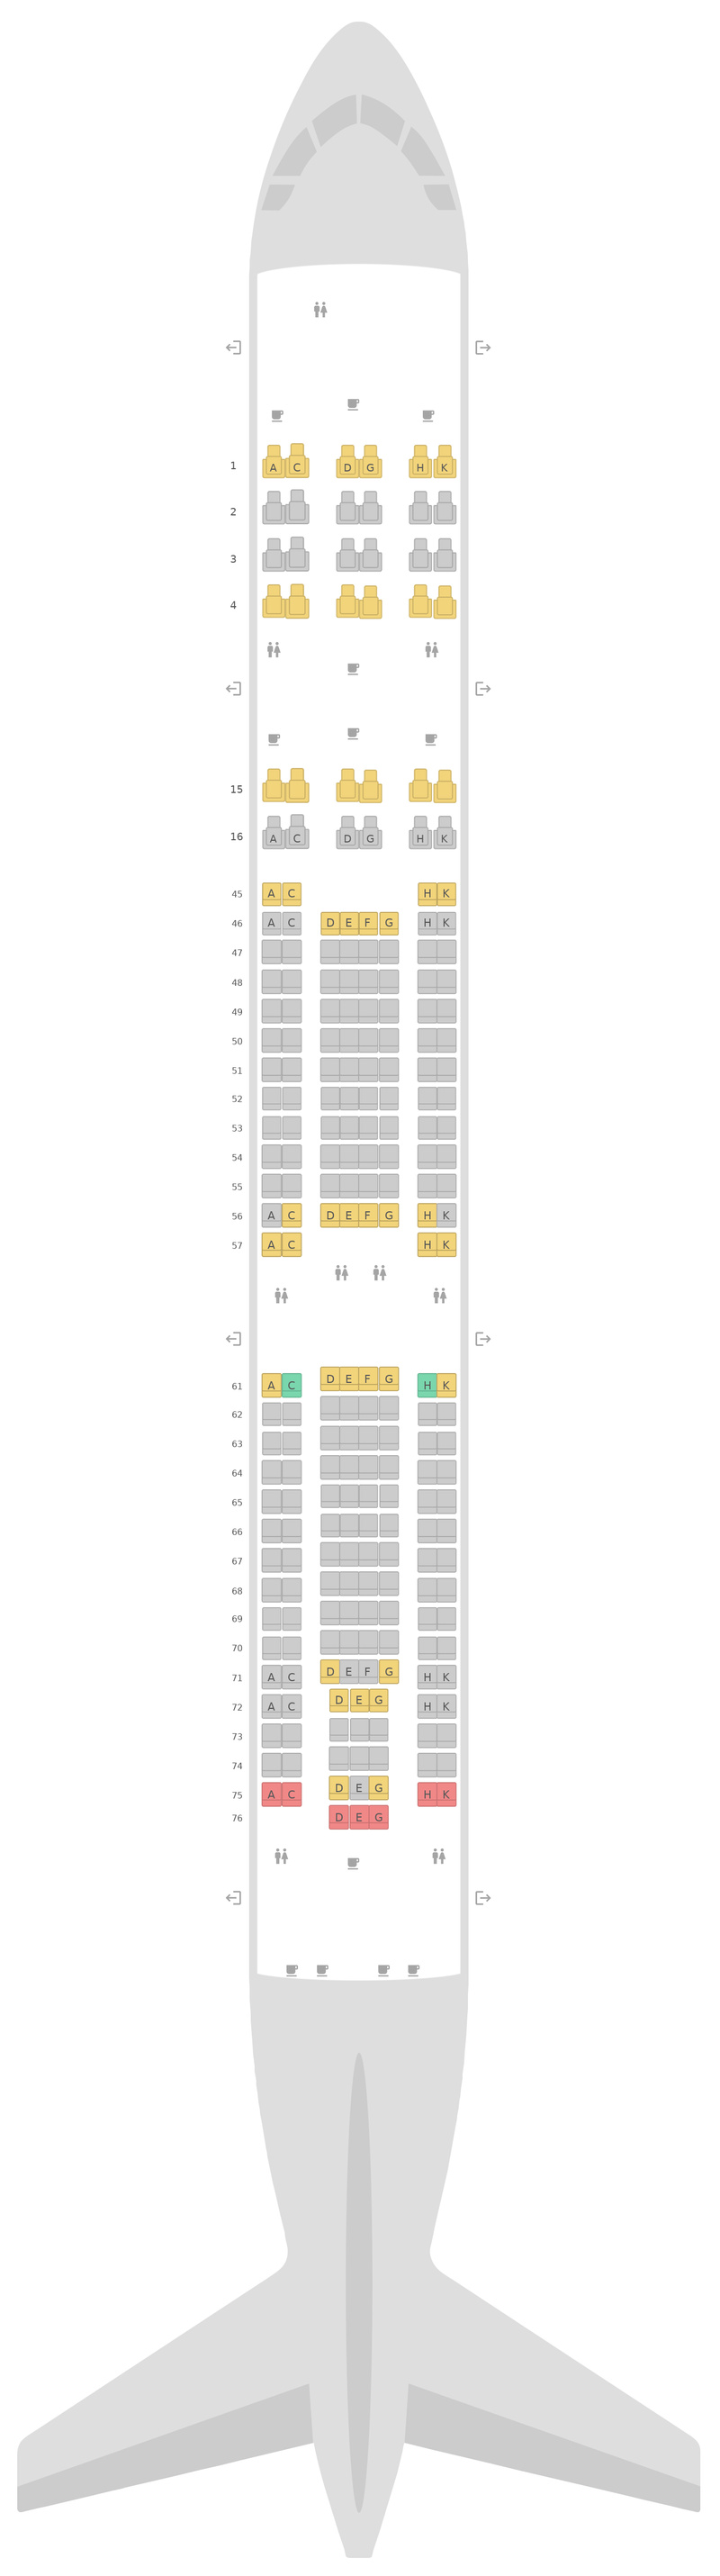 Seat Map South African Airways Airbus A340-300 (343) v2